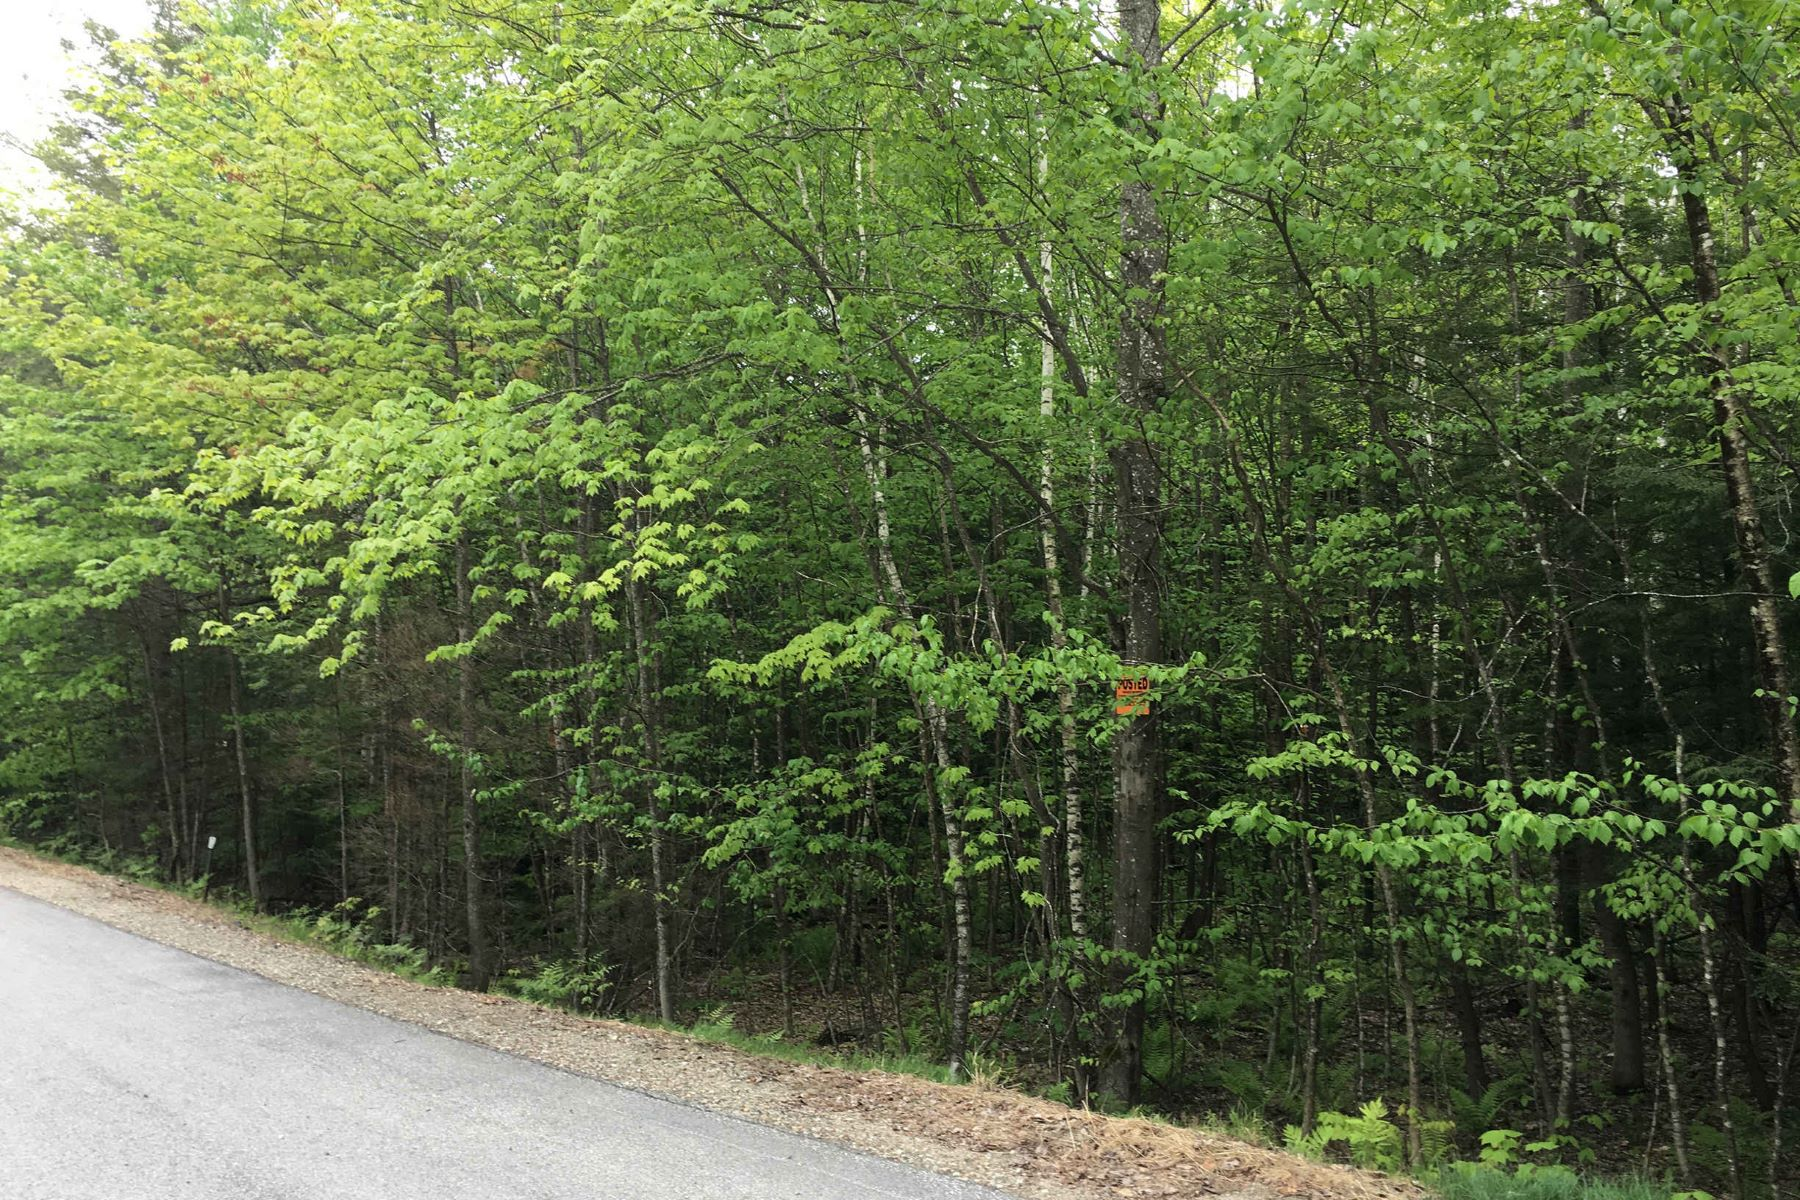 Terreno por un Venta en 4.5 Acres Near Lake Winnipesaukee, Shops, Restaurants TBD Ragged Mountain Road New Durham, Nueva Hampshire 03855 Estados Unidos